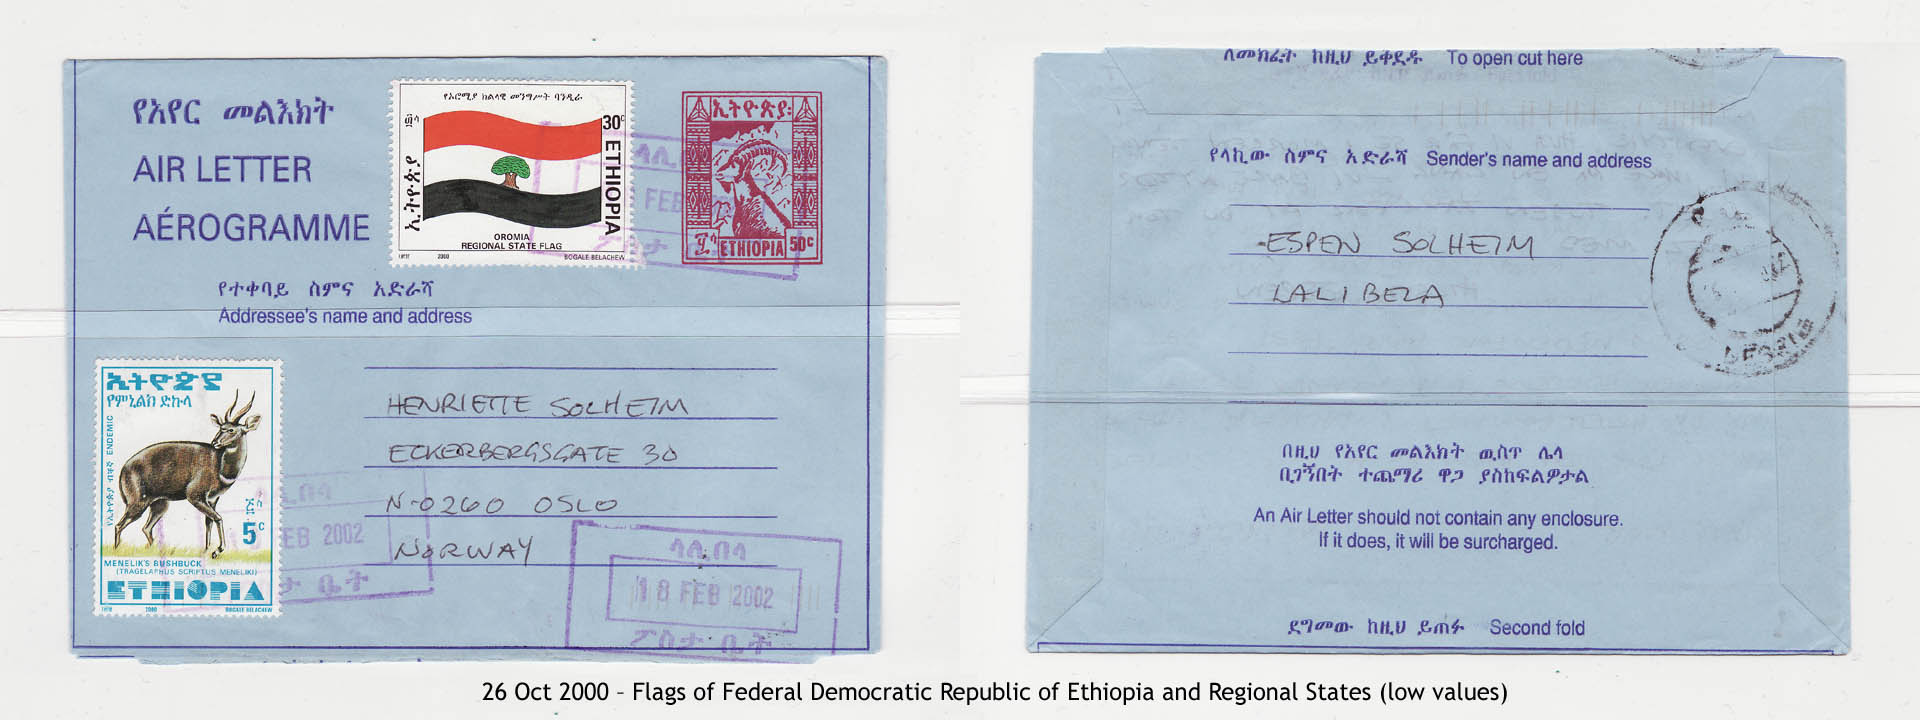 20001026 – Flags of Federal Democratic Republic of Ethiopia and Regional States (low values)